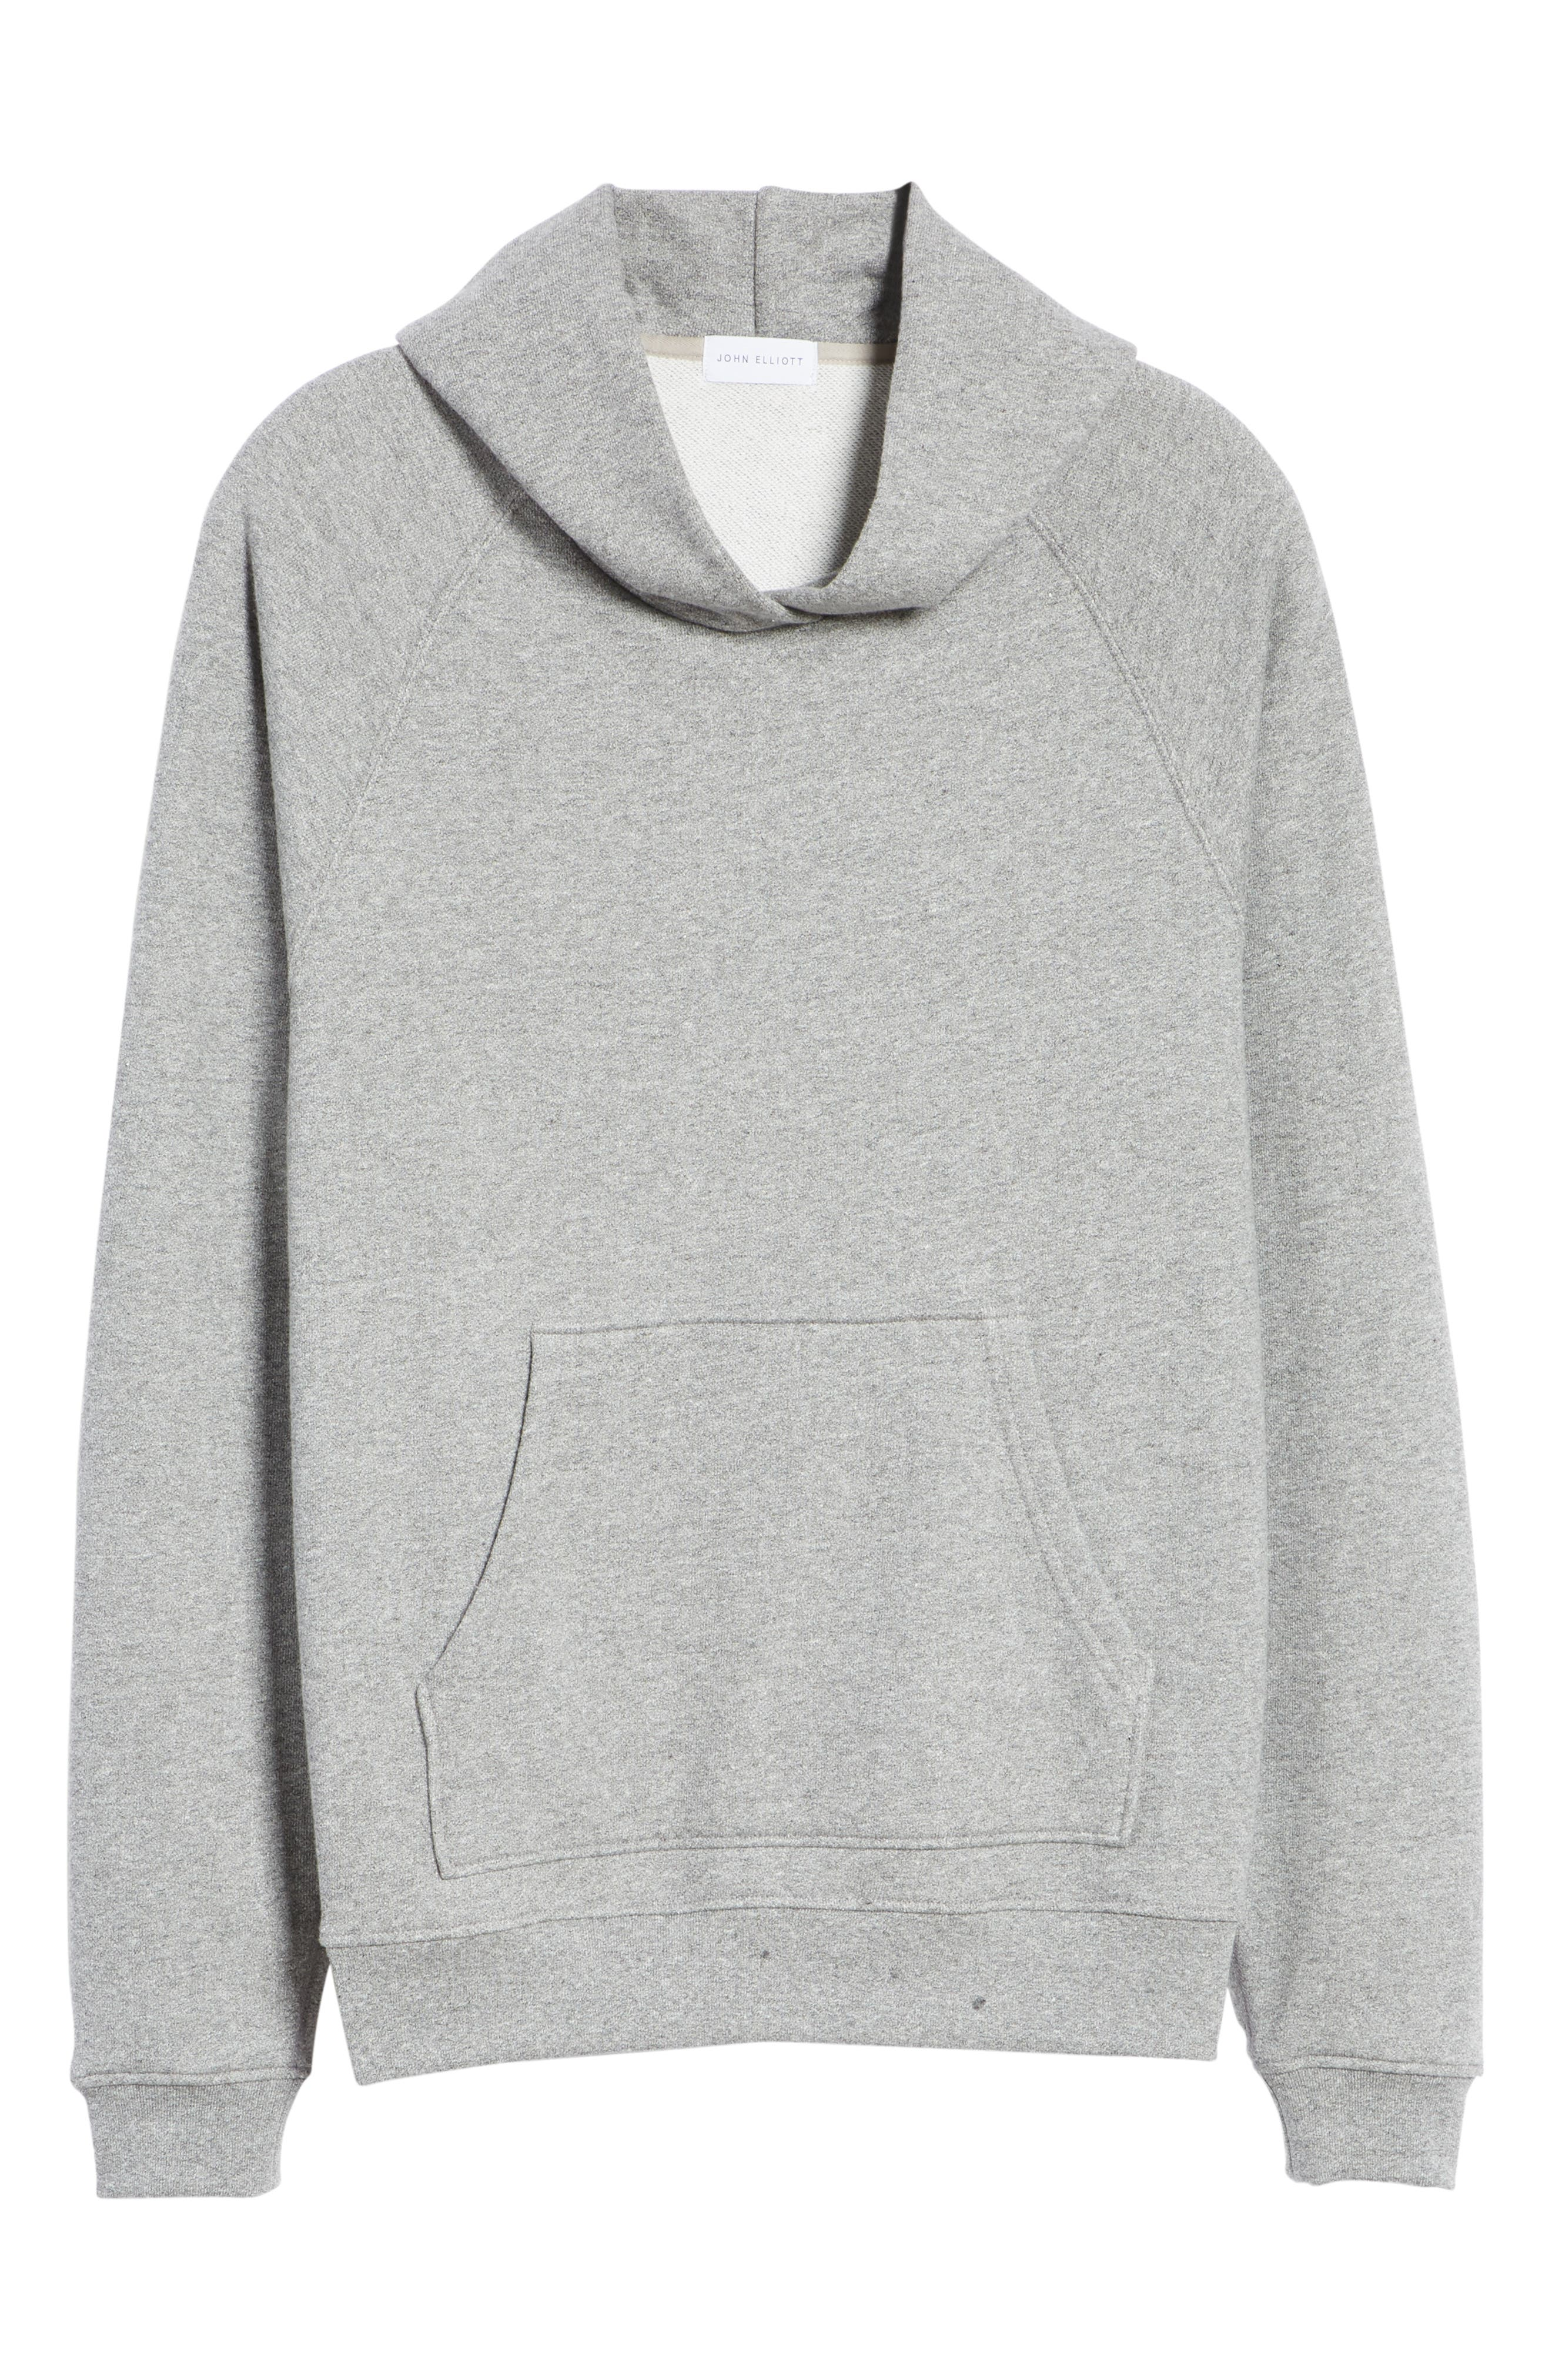 Raglan Hooded Sweatshirt,                             Alternate thumbnail 6, color,                             DARK GREY